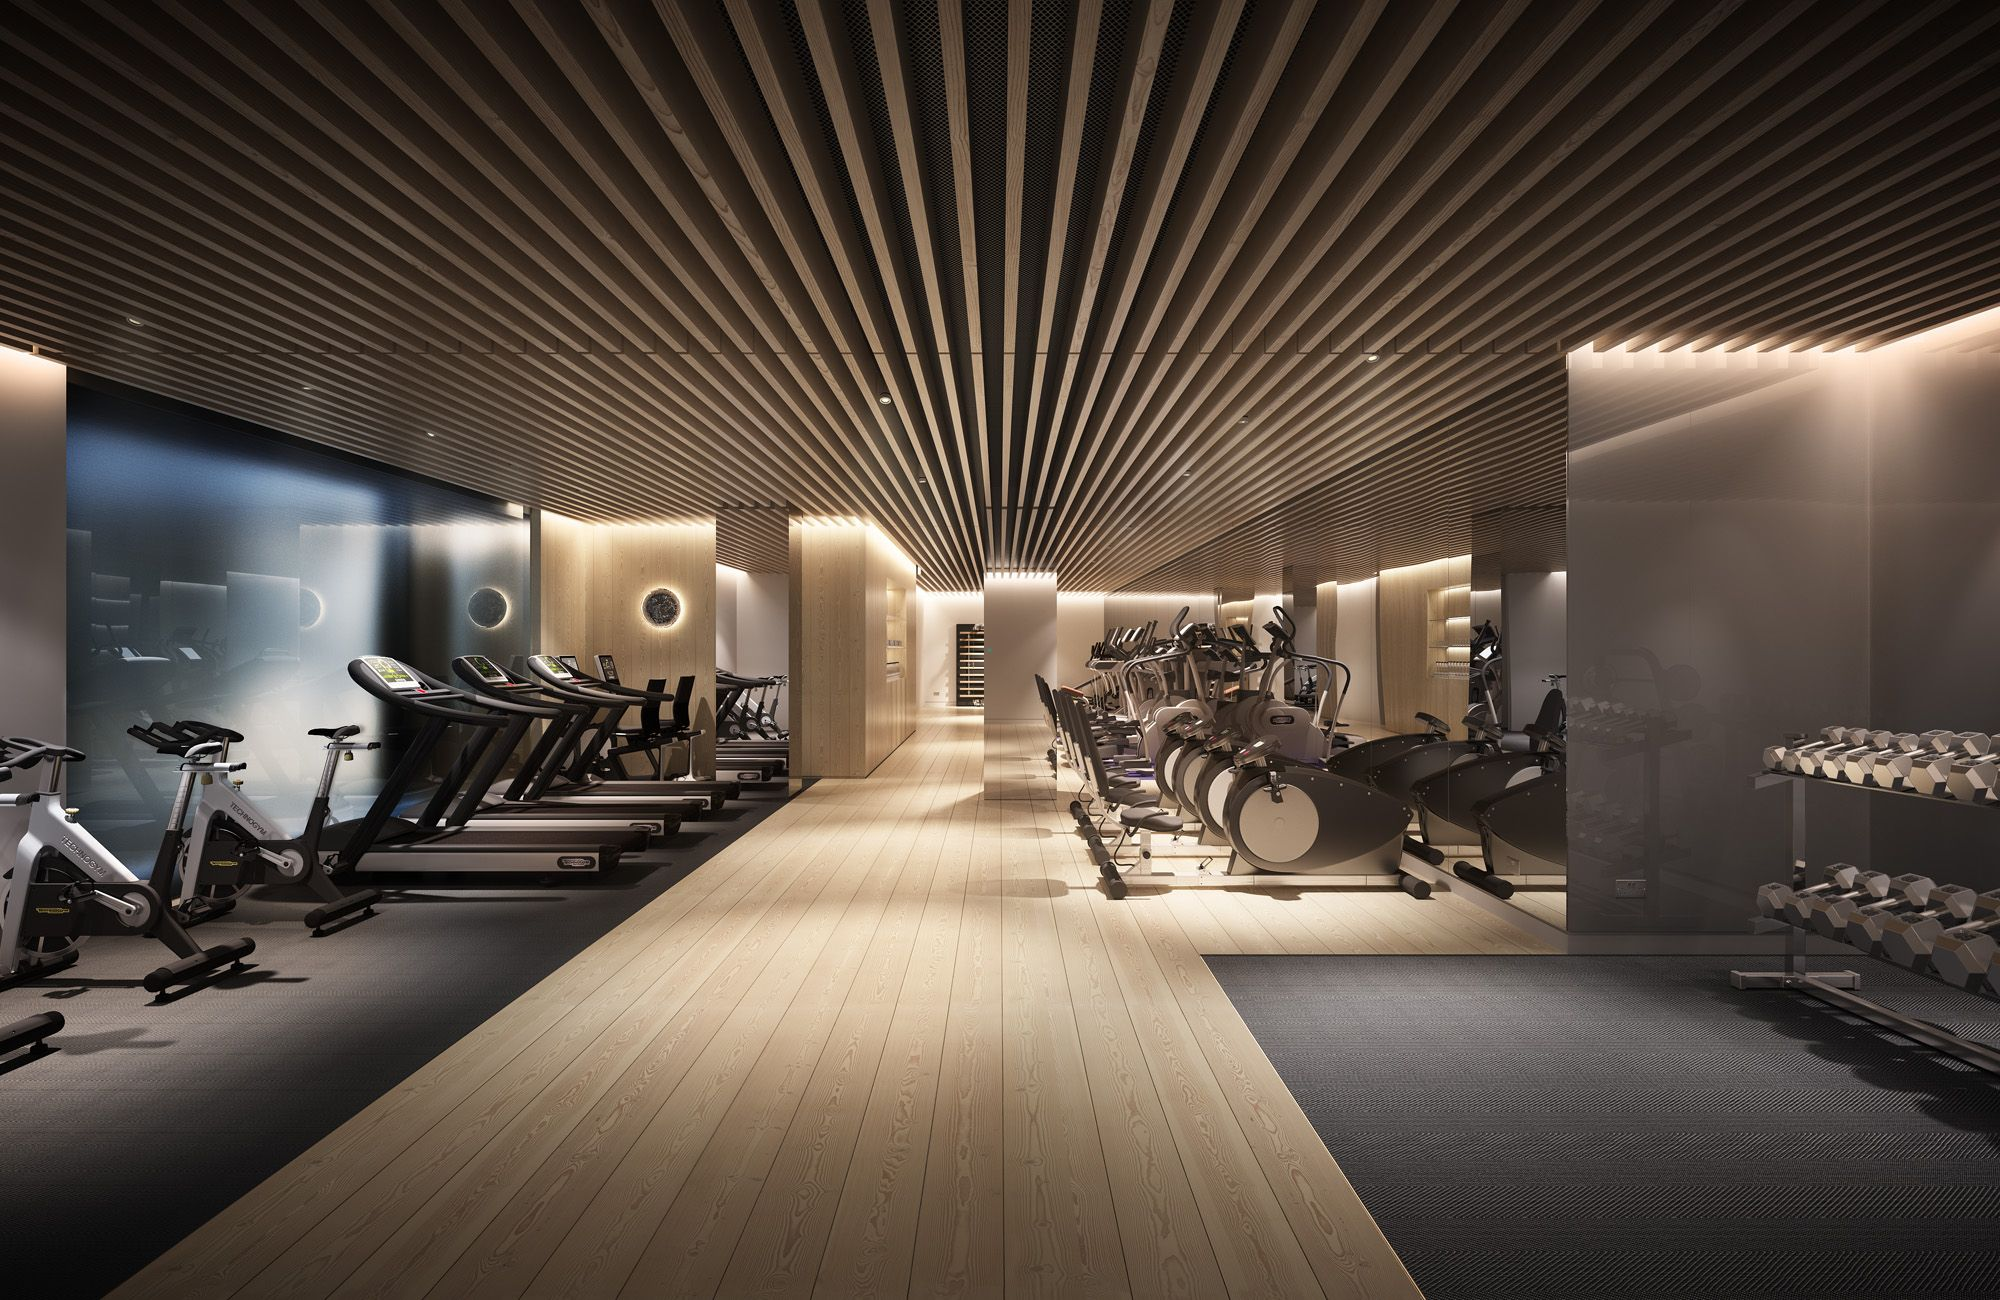 Mayfair Park Residences For Clivedale London Plp Architecture And Jouin Manku Architectural Visualisation Cgi Gym Design Interior Gym Room Home Gym Design